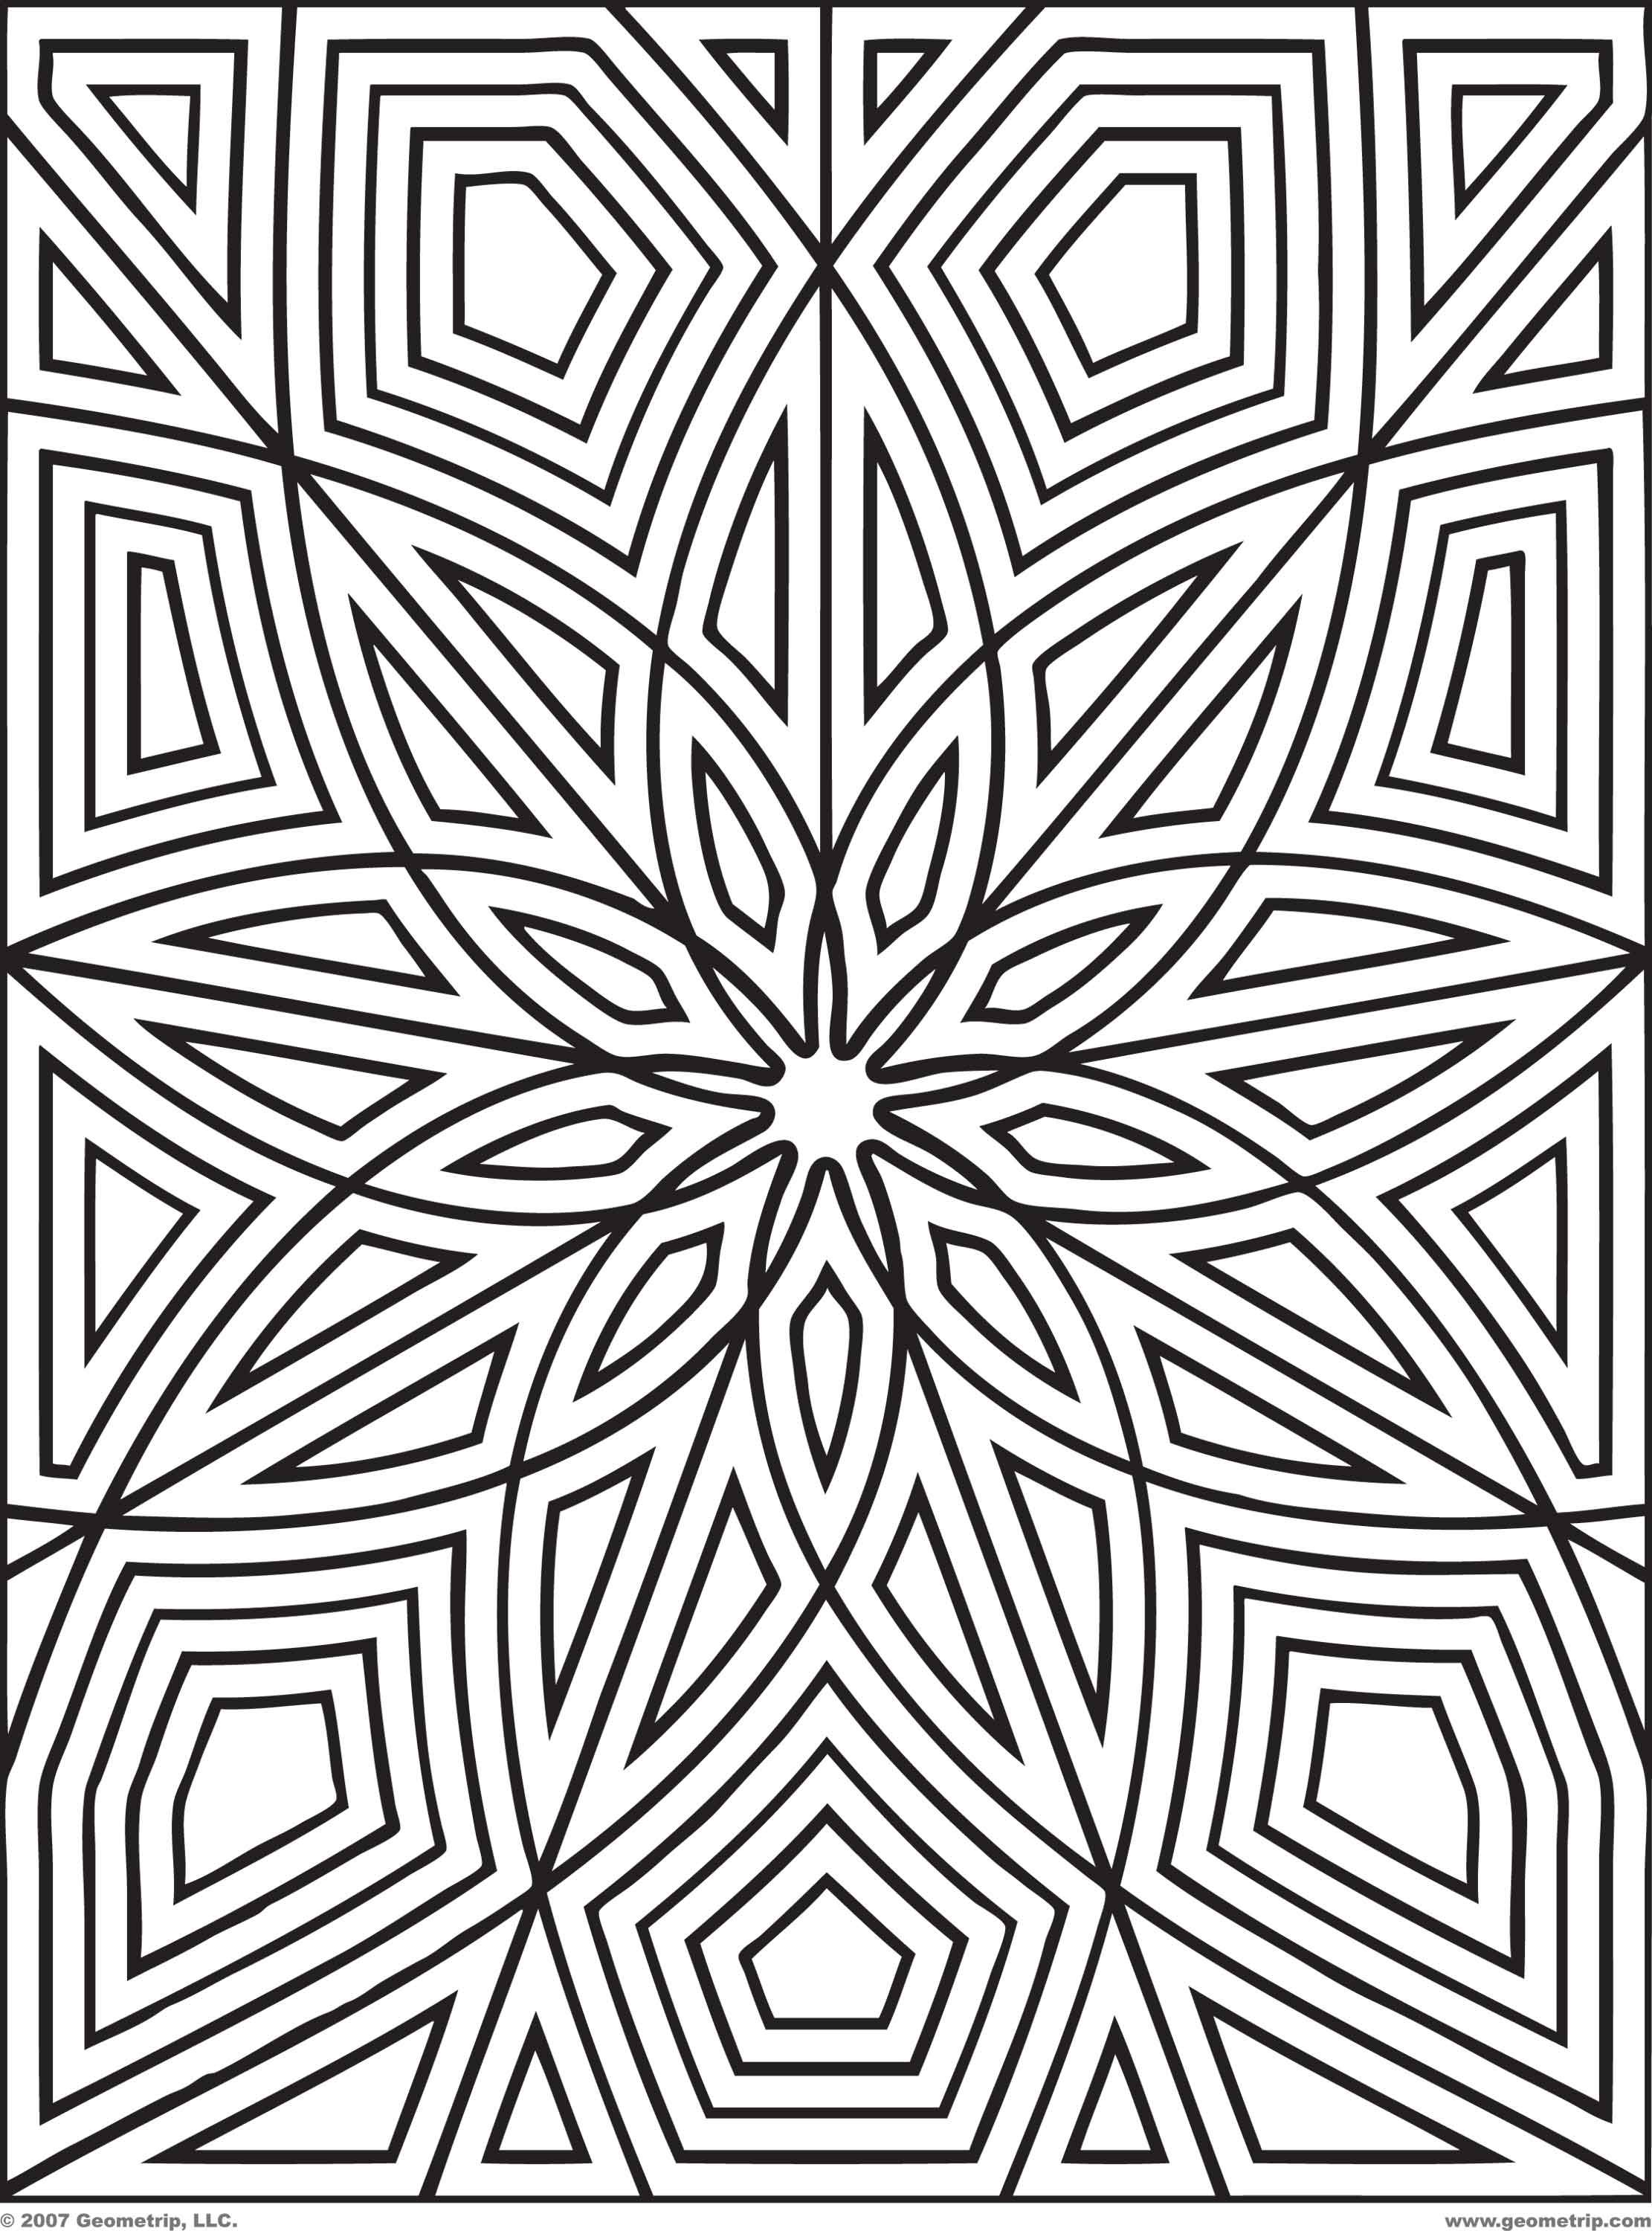 Luxury Geometric Pattern Coloring Pages For Adults #6921 Geometric